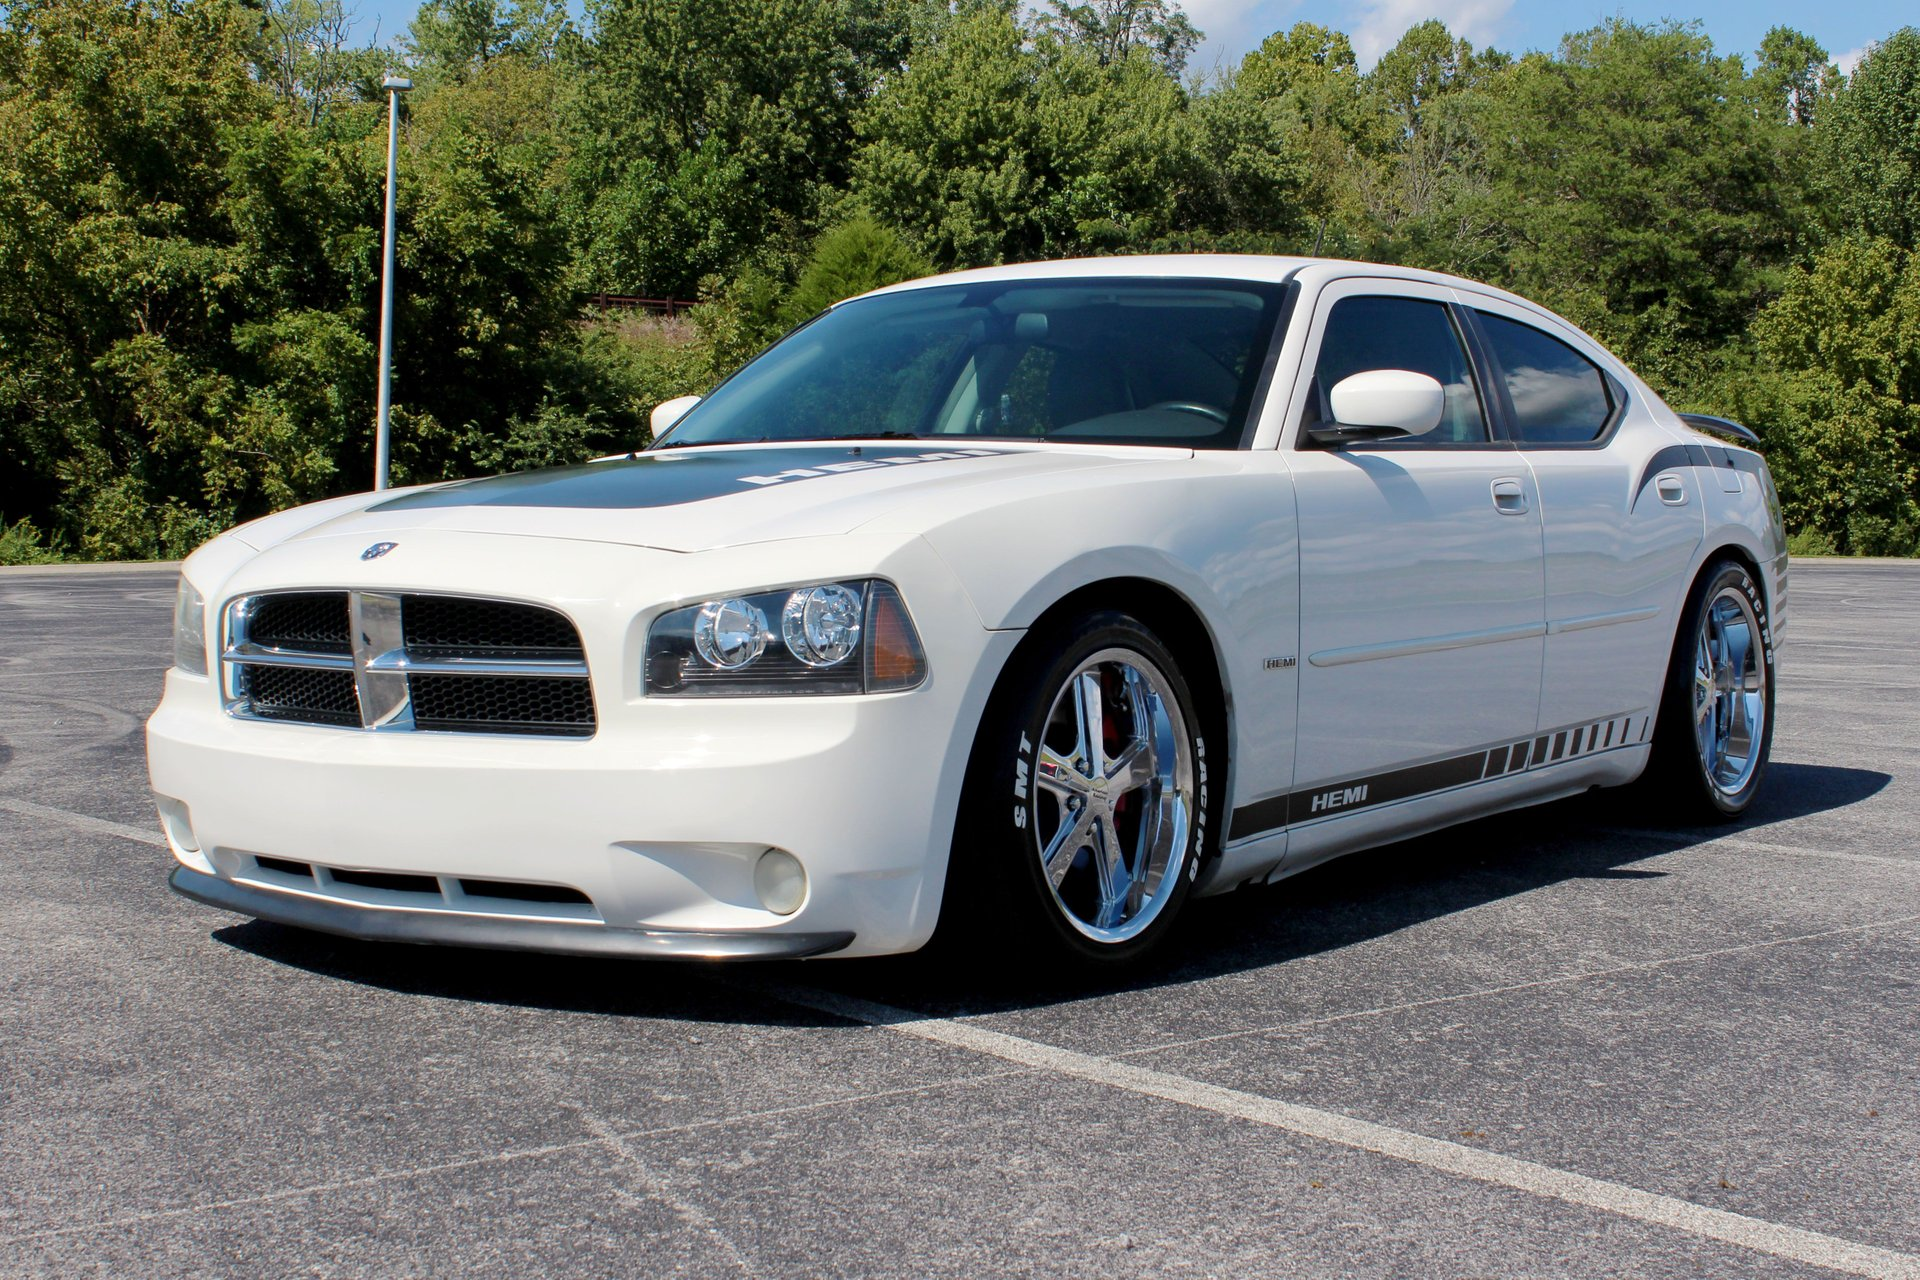 2008 Charger Rt >> 2008 Dodge Charger R T For Sale 131519 Mcg